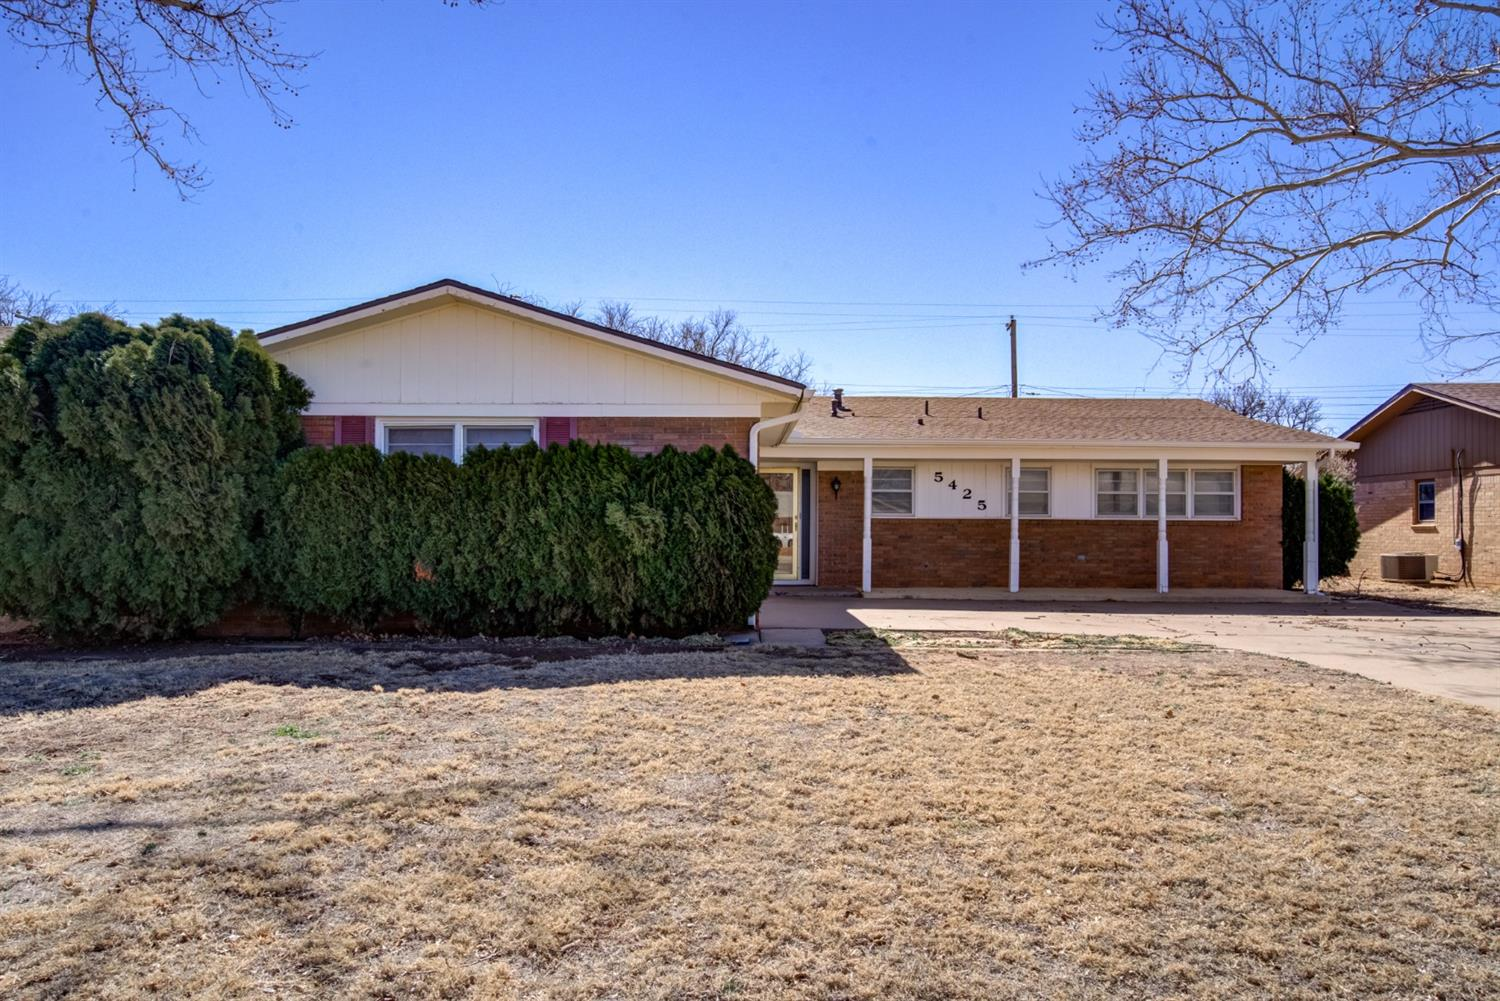 3bed/2bath/2garage. Brand new roof, HVAC, water heater, and master shower. Large living room with beautiful brick fireplace and sliding glass door to the large covered patio. Excellent location in Central Lubbock about 2 minutes to Marsha Sharp Fwy and Loop 289. About 7 minutes to Texas Tech and LCU.